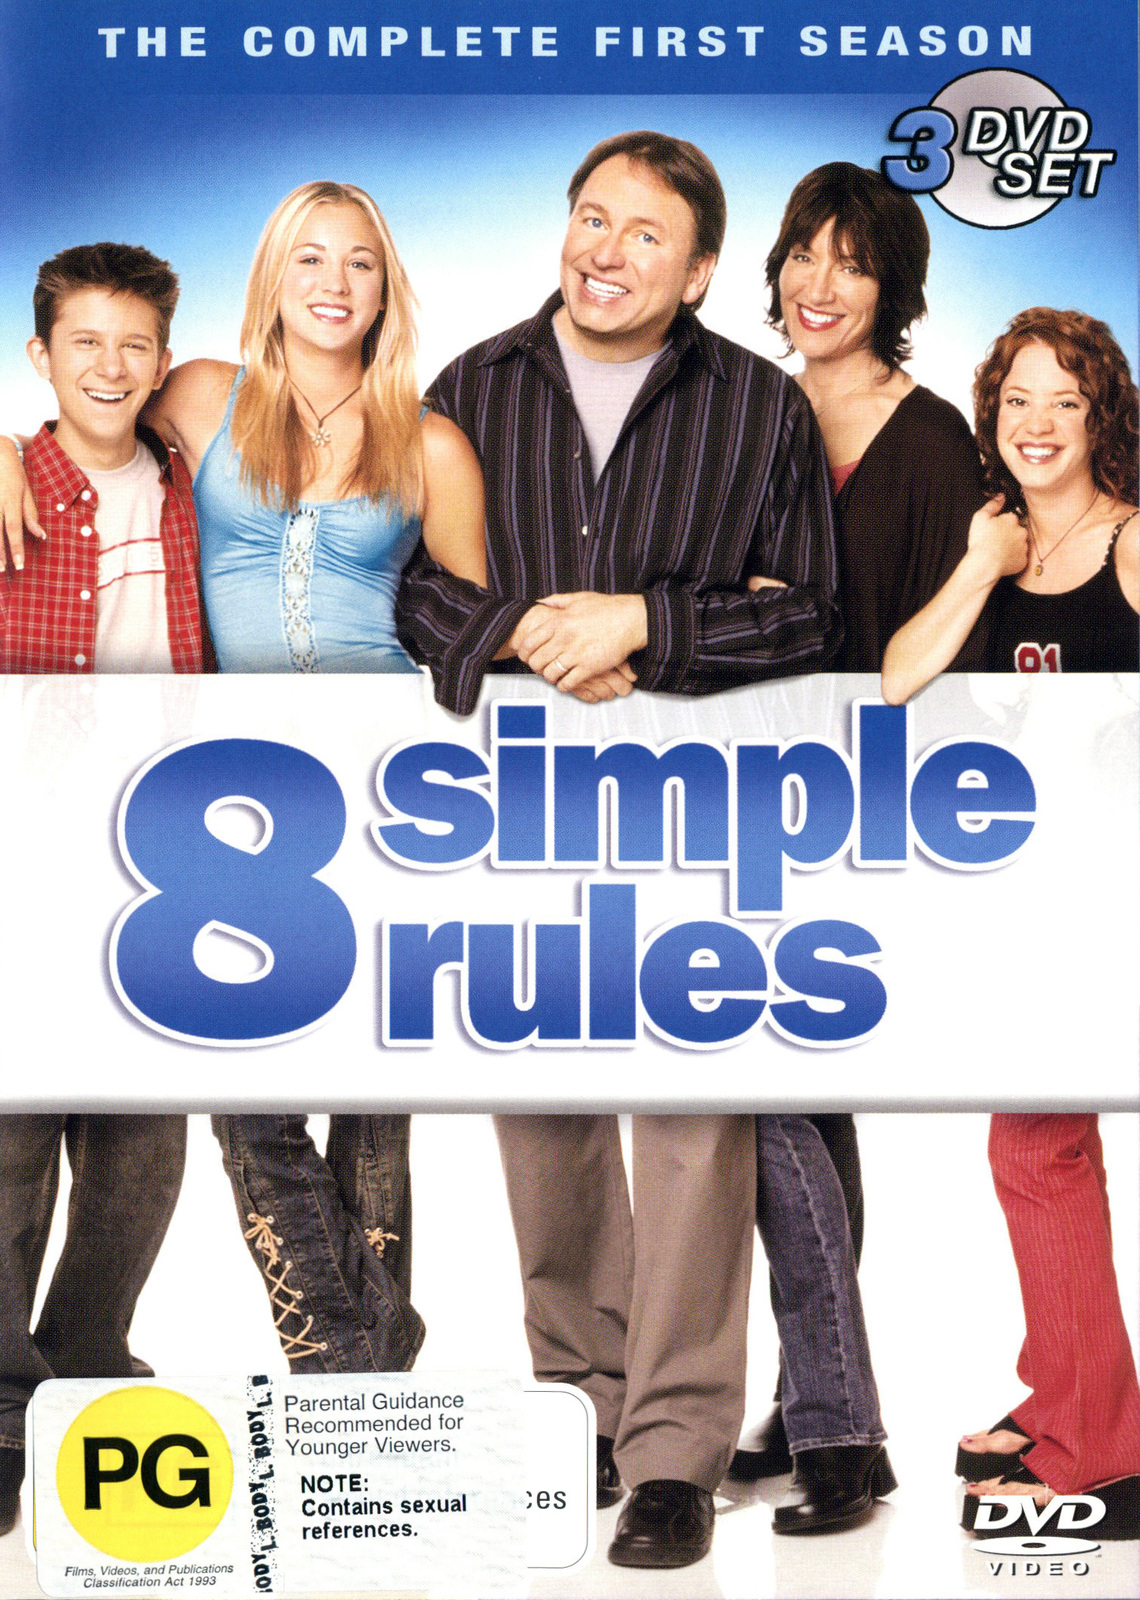 8 Simple Rules - Complete Season 1 (3 Disc Set) DVD image